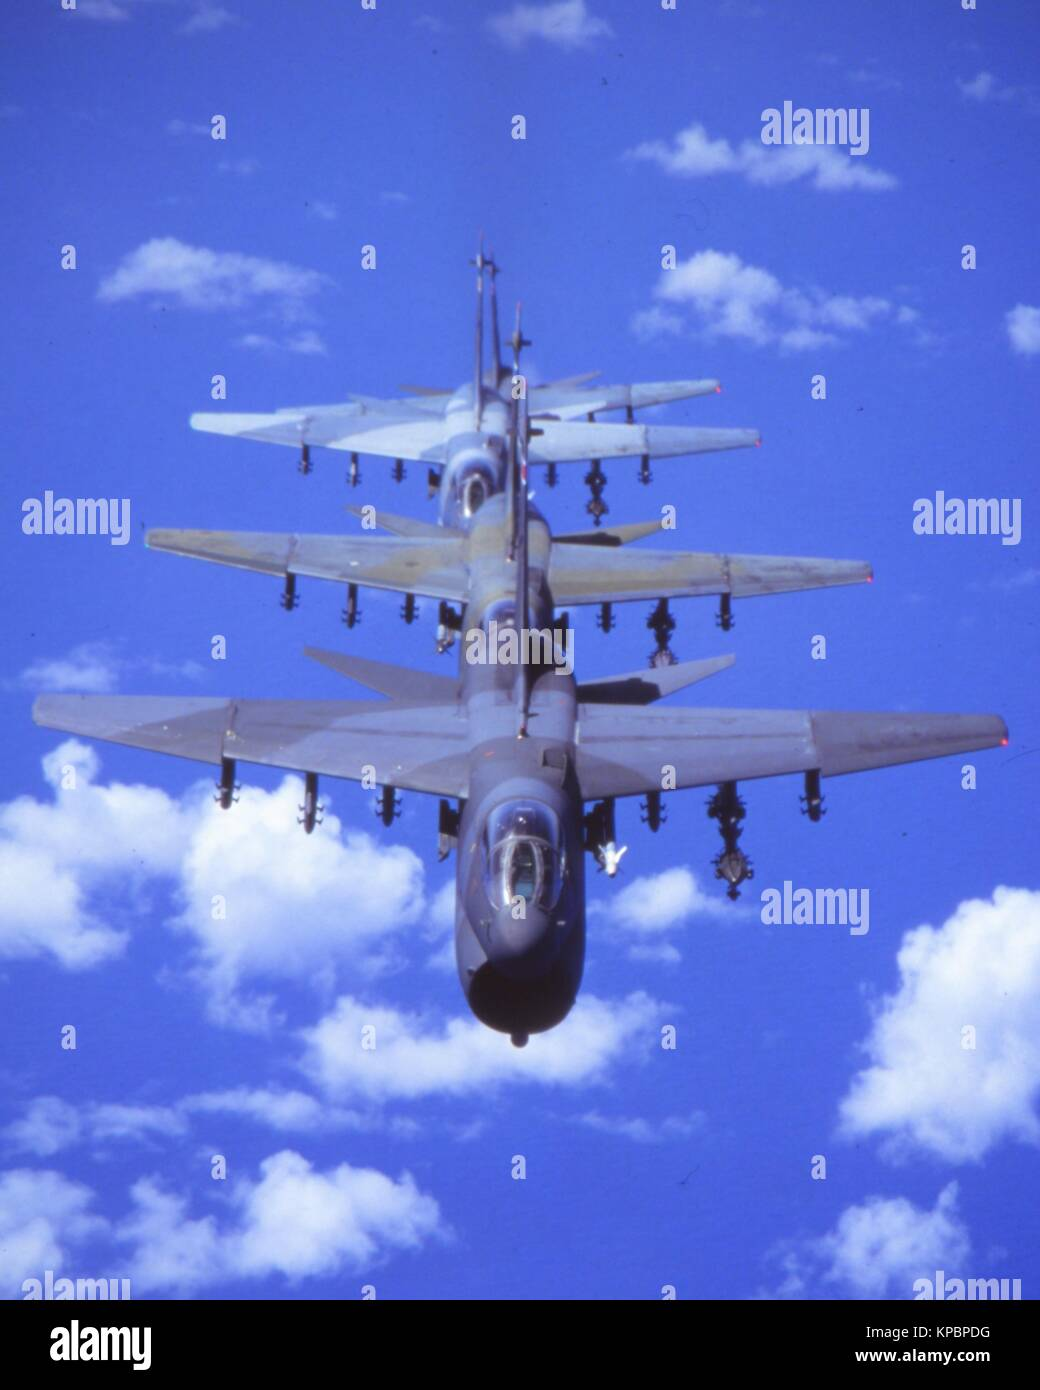 Four U.S. Air Force A-7D Corsair attack aircraft fly in an in-trail formation 1992 over the Caribbean. - Stock Image